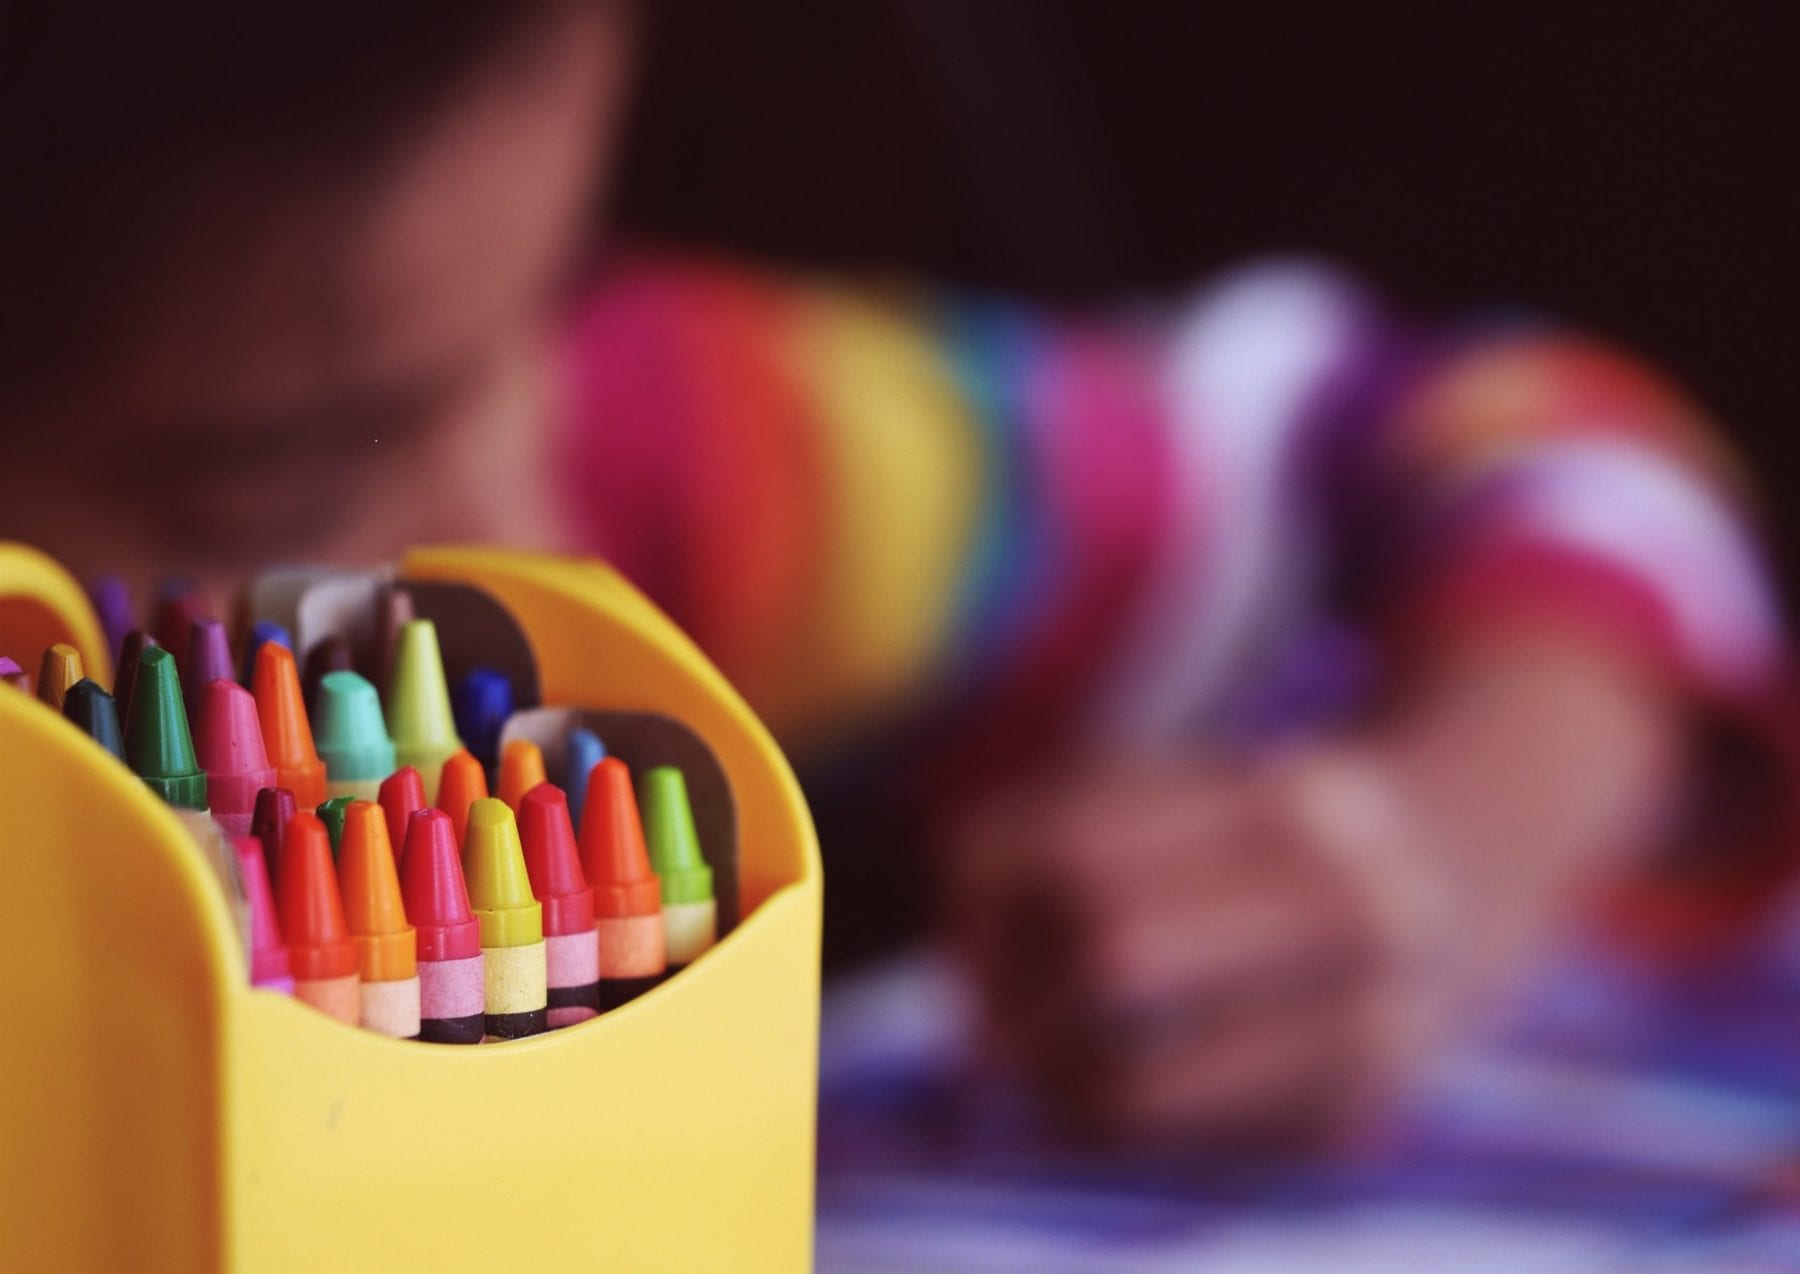 Check out hundreds of pre-school level crafts and activities